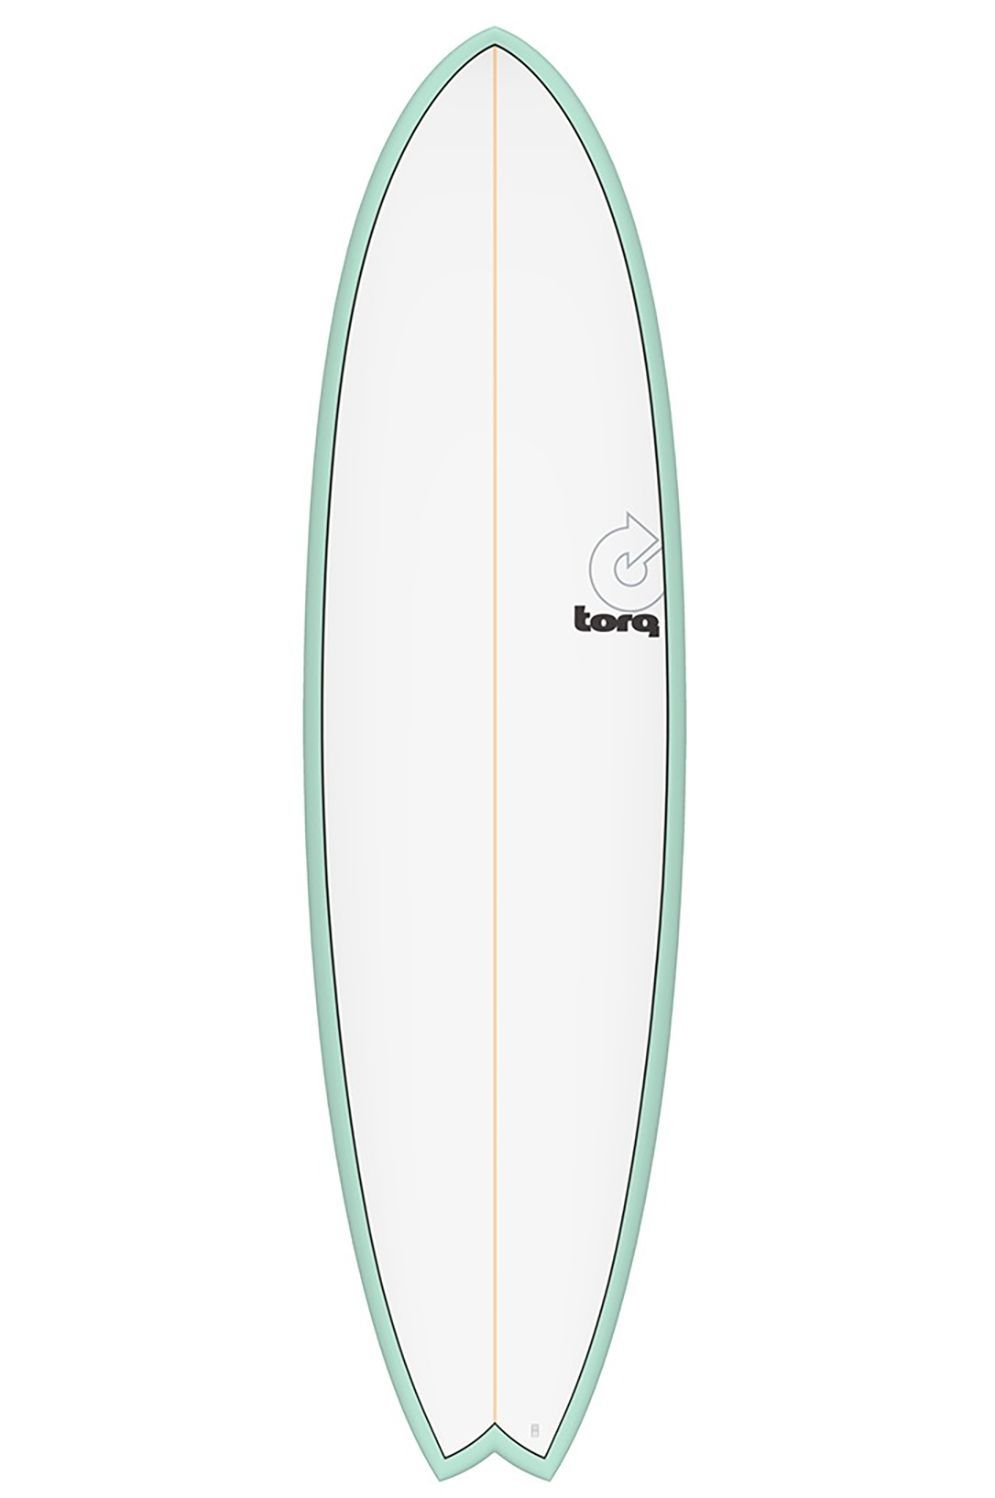 Torq Surf Board 5'11 MOD FISH SEAGREEN + PINLINE Swallow Tail - Color Futures Multisystem 5ft11